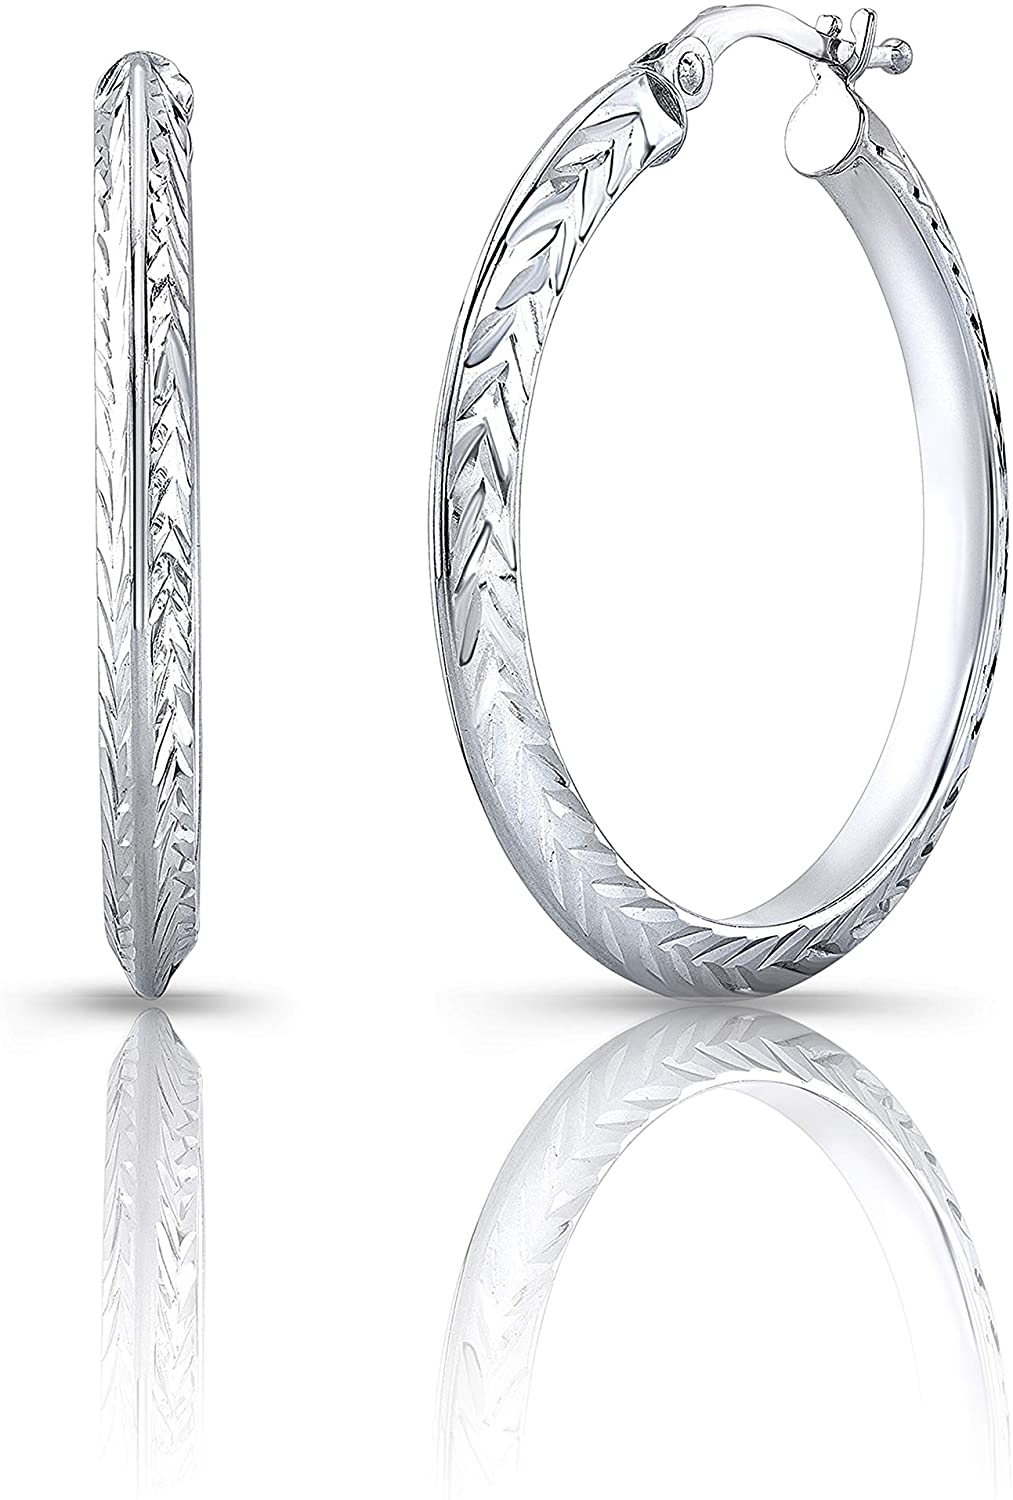 Milano Jewelry Collection Certified 14K White Gold 2.10 grams White Gold Diamond Cut Designed Hoop Earring l Gift Boxed l Made in Italy (14K-E2696/WG)